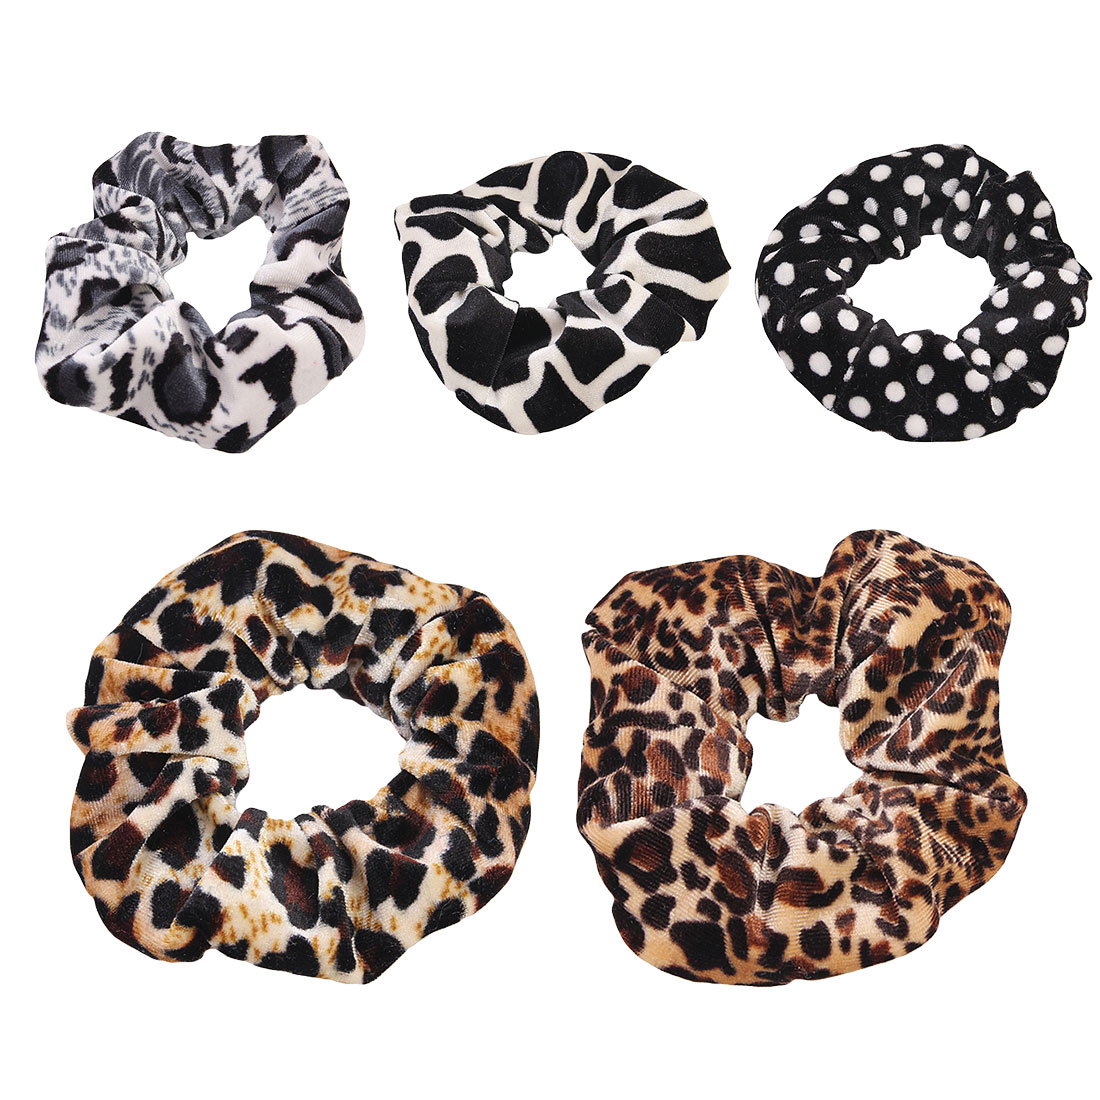 1Pcs Classic simple Smooth Animal Velvet hair Scrunchies Leopard Print Houndstooth patterns autumn winter hairbands accessory in Women 39 s Hair Accessories from Apparel Accessories